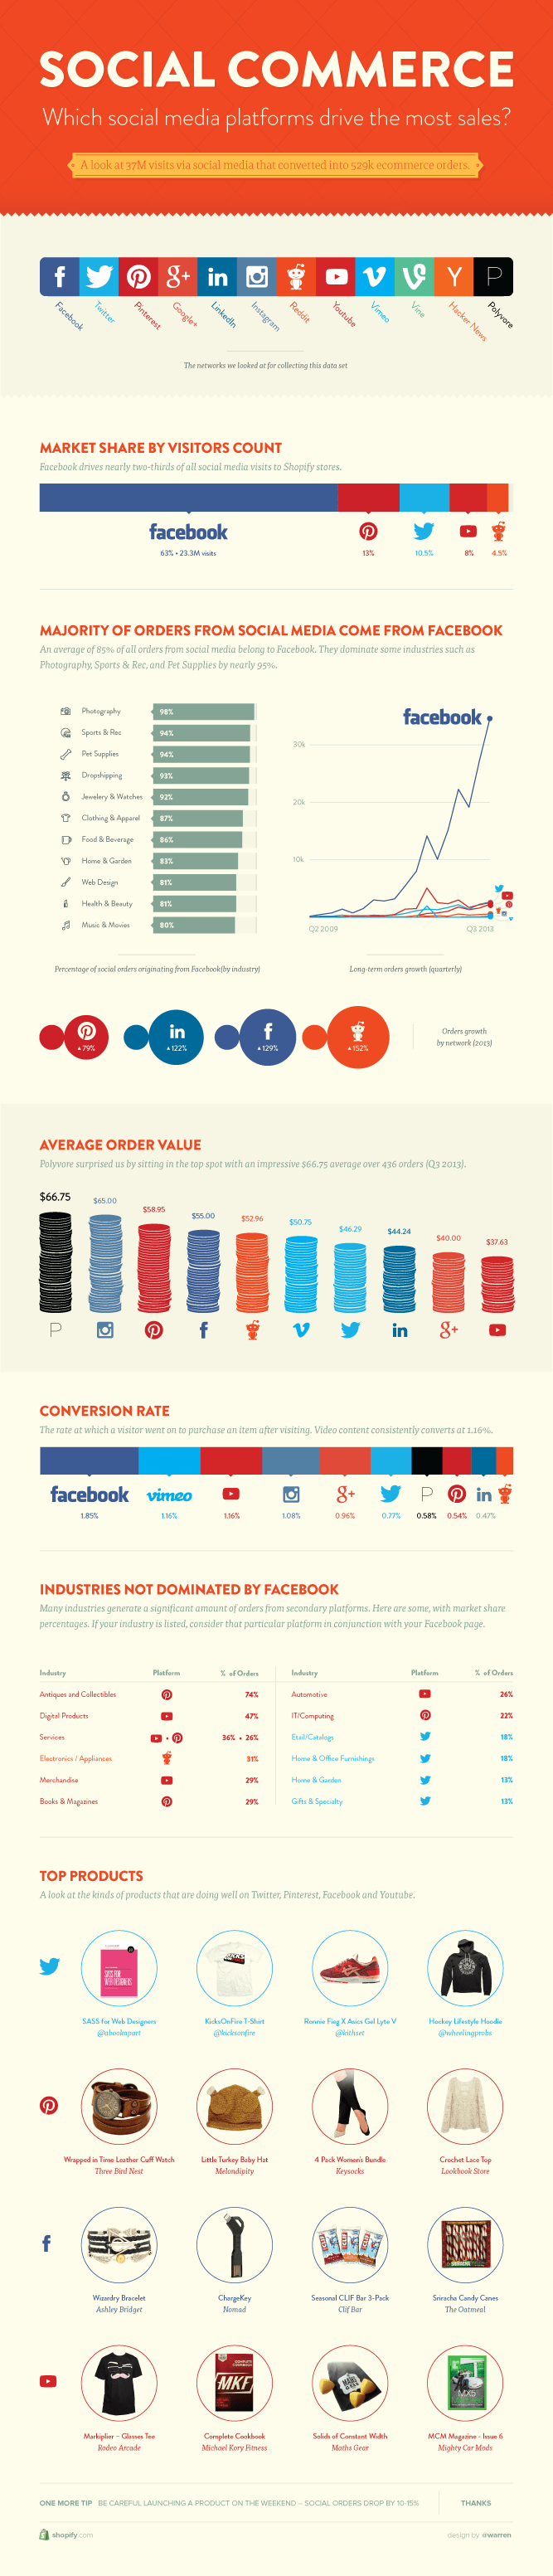 social-growth-infographic